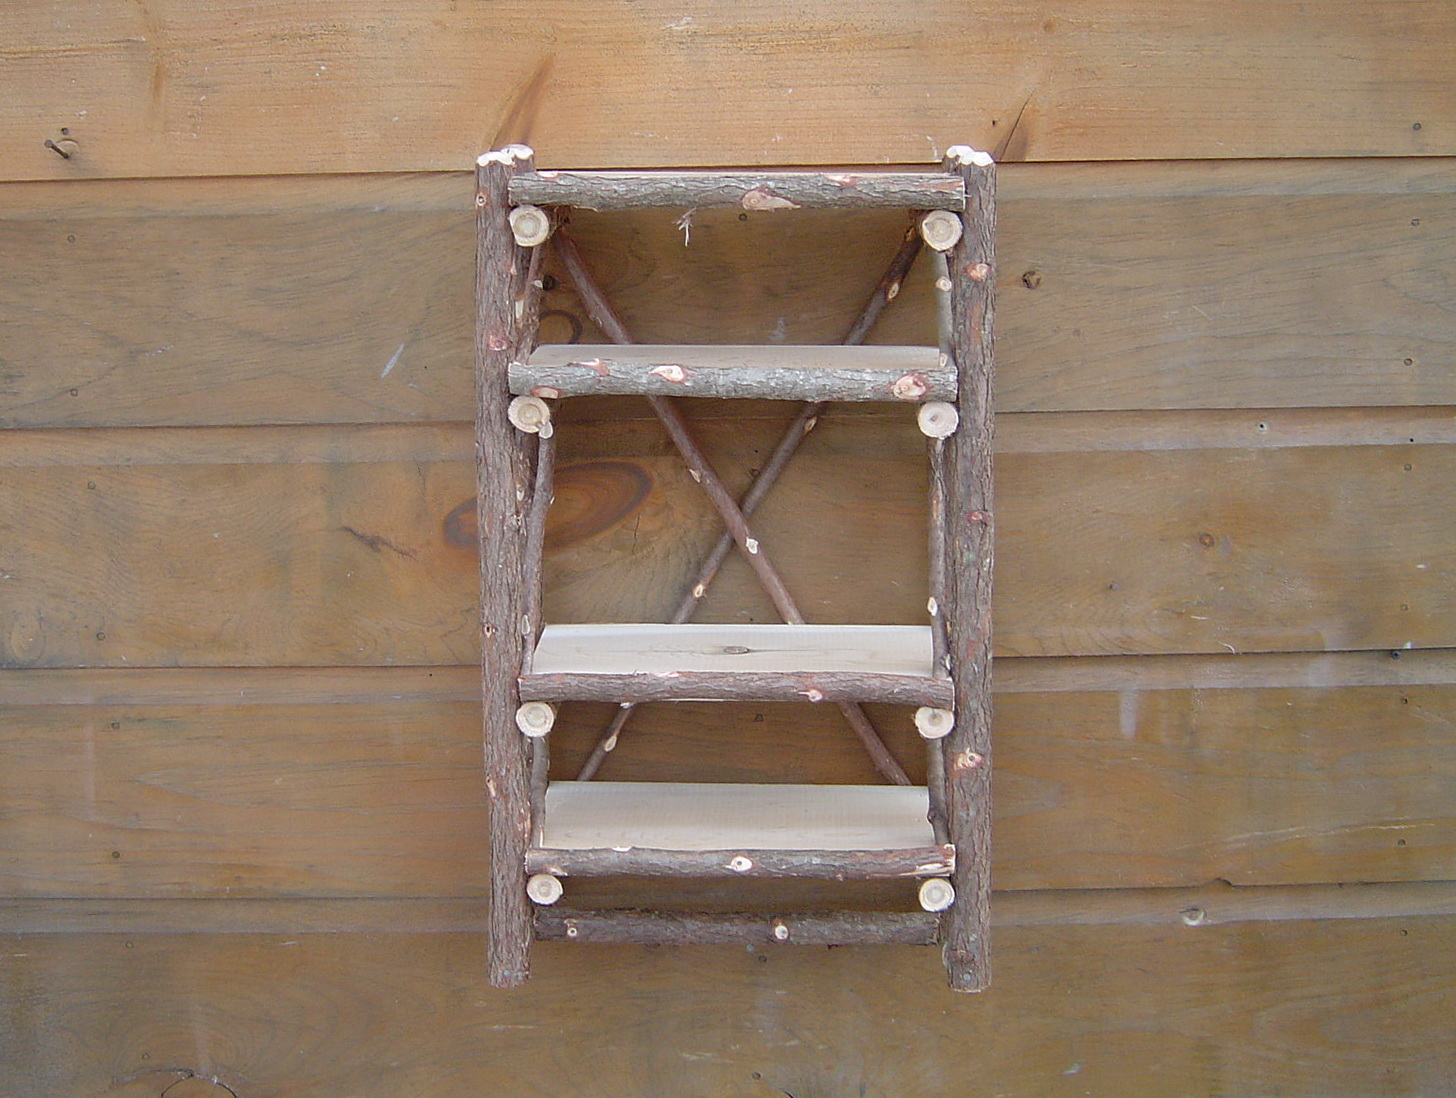 Rustic Bathroom Wall Shelves